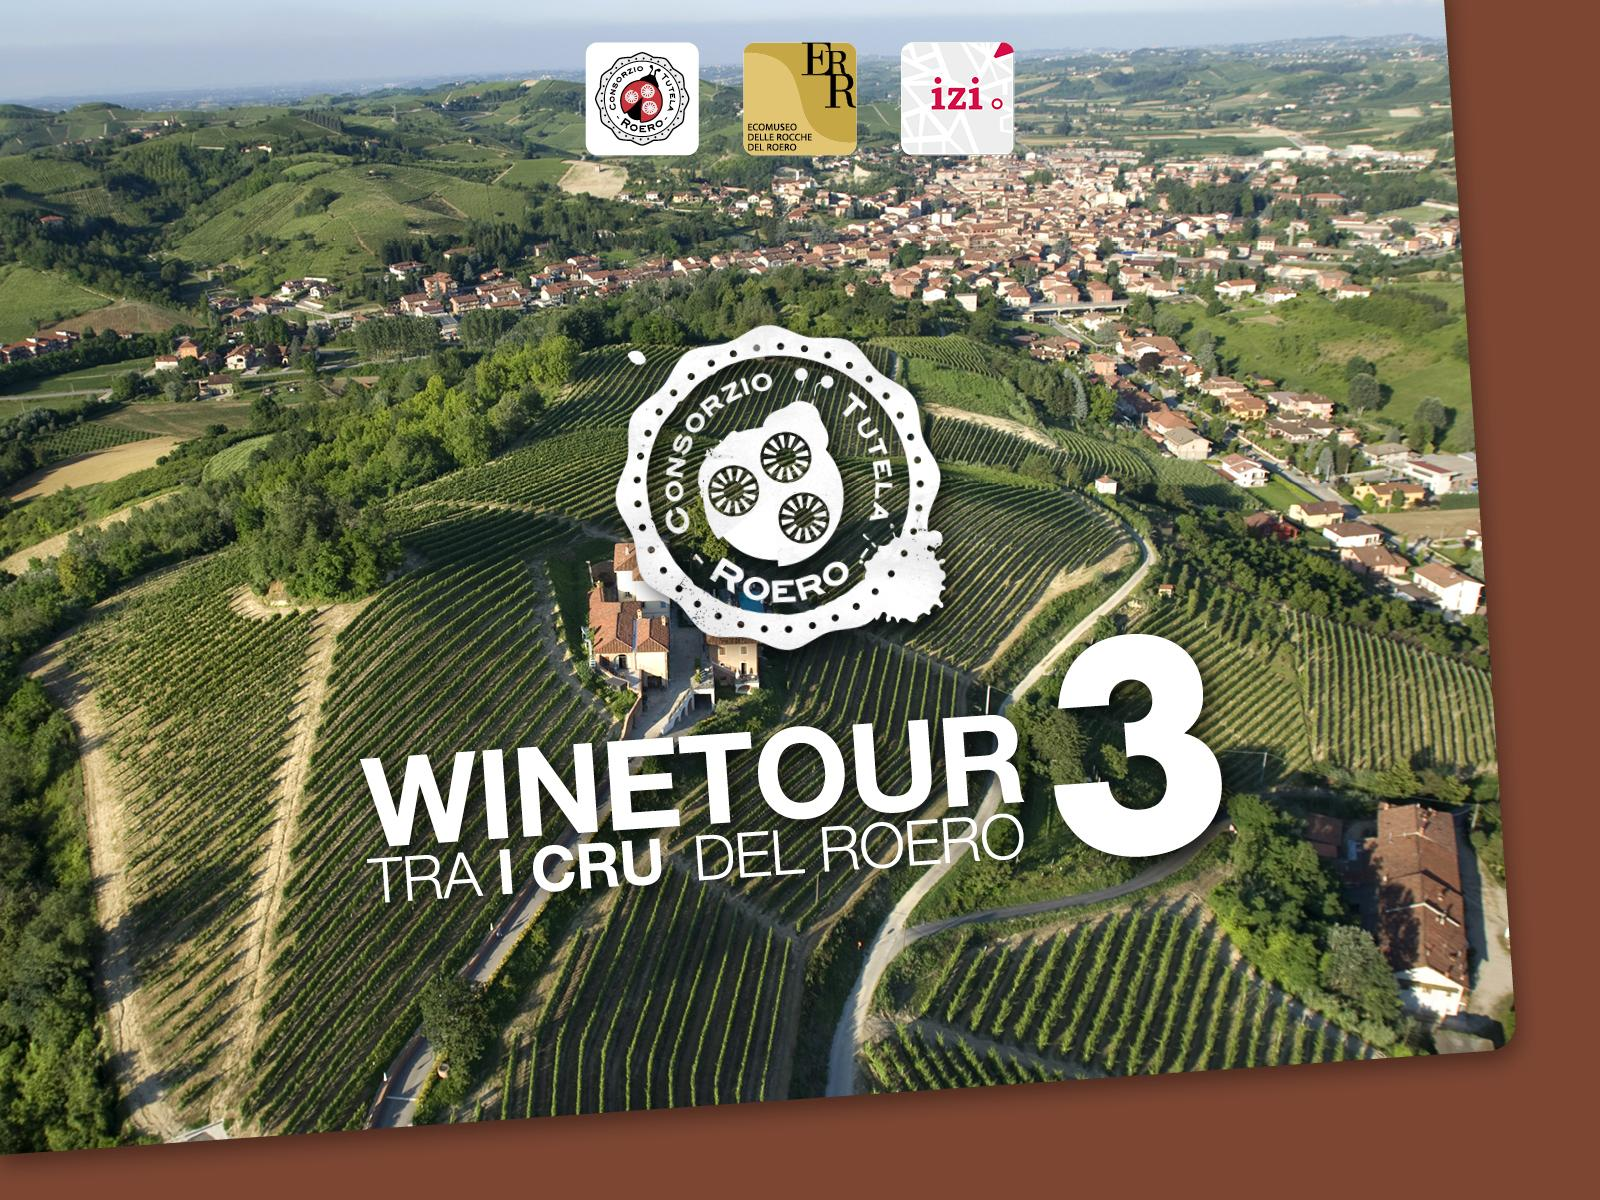 WineTour 3 – The crus at the edge of the Rocche's area.